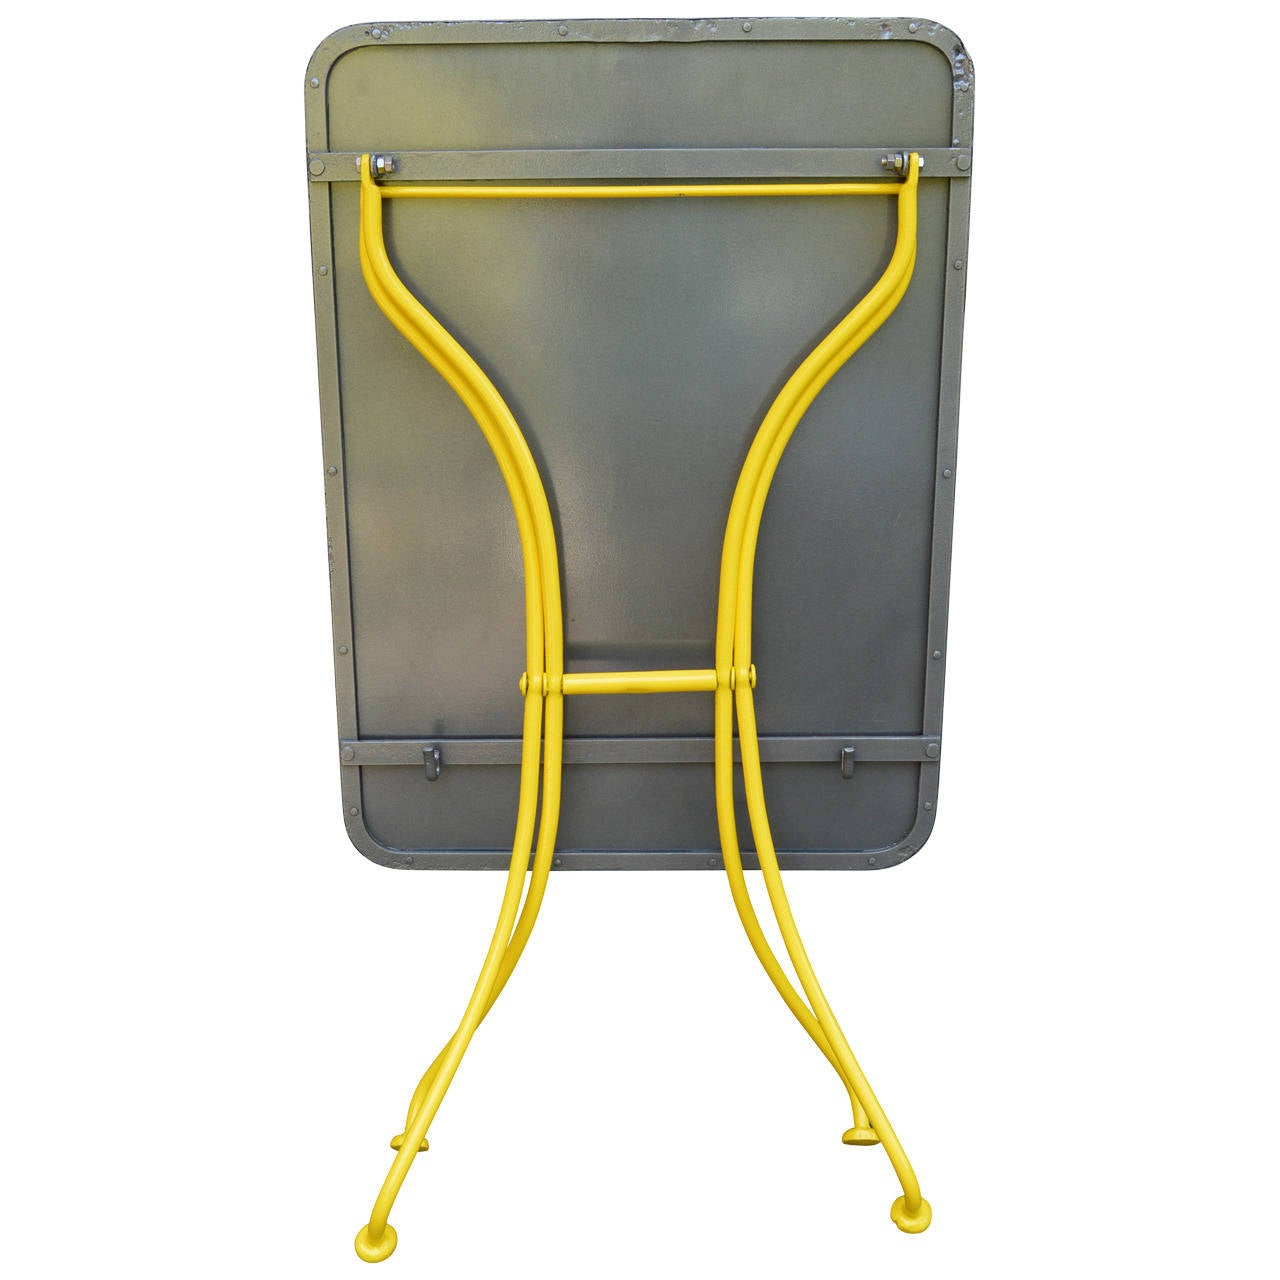 This is a very versatile table and is great for outdoor bar table, a small desk, console, plant table, additional dining area, etc. Folds for easy storage. Sturdy and solid. Table is is yellow with gunmetal top  Measurements when open: 29.25  H x